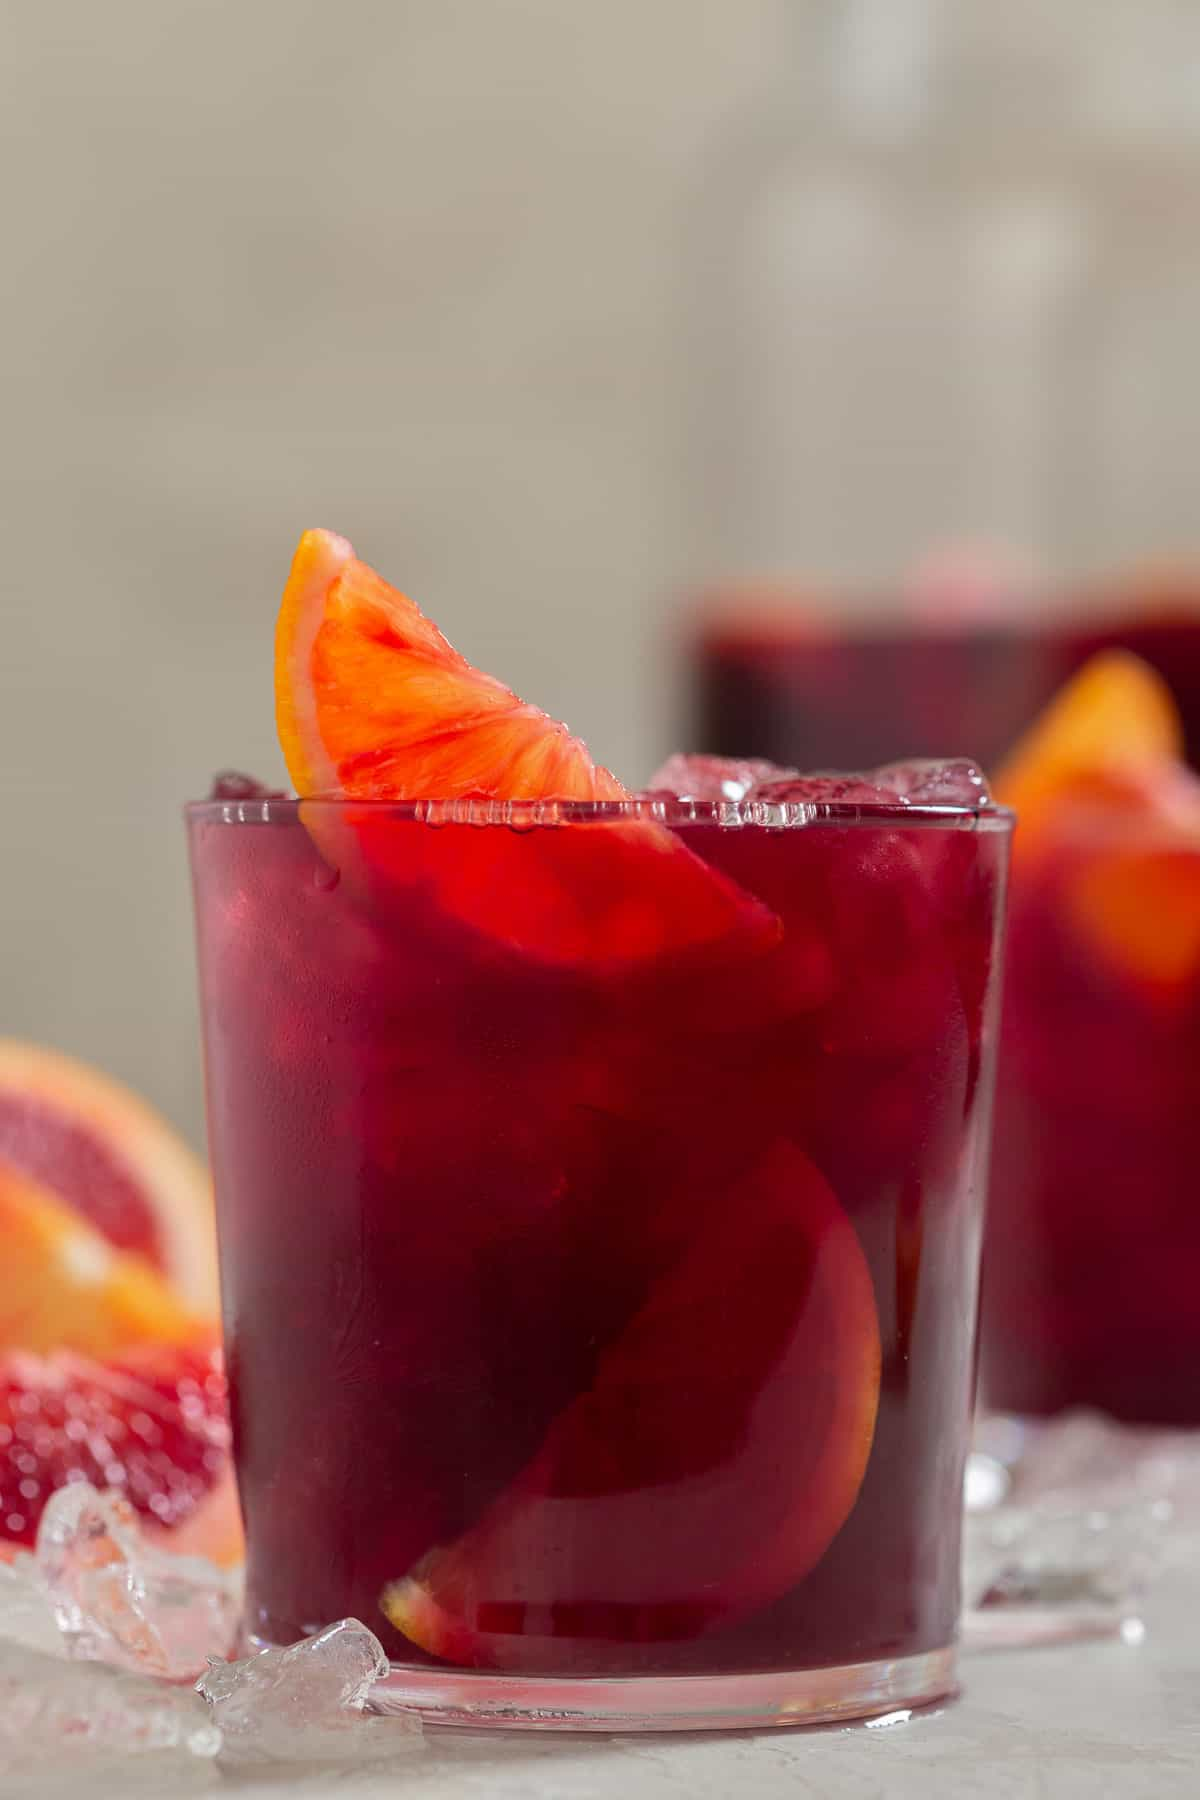 Close up of a dark red cocktail garnished with orange slices